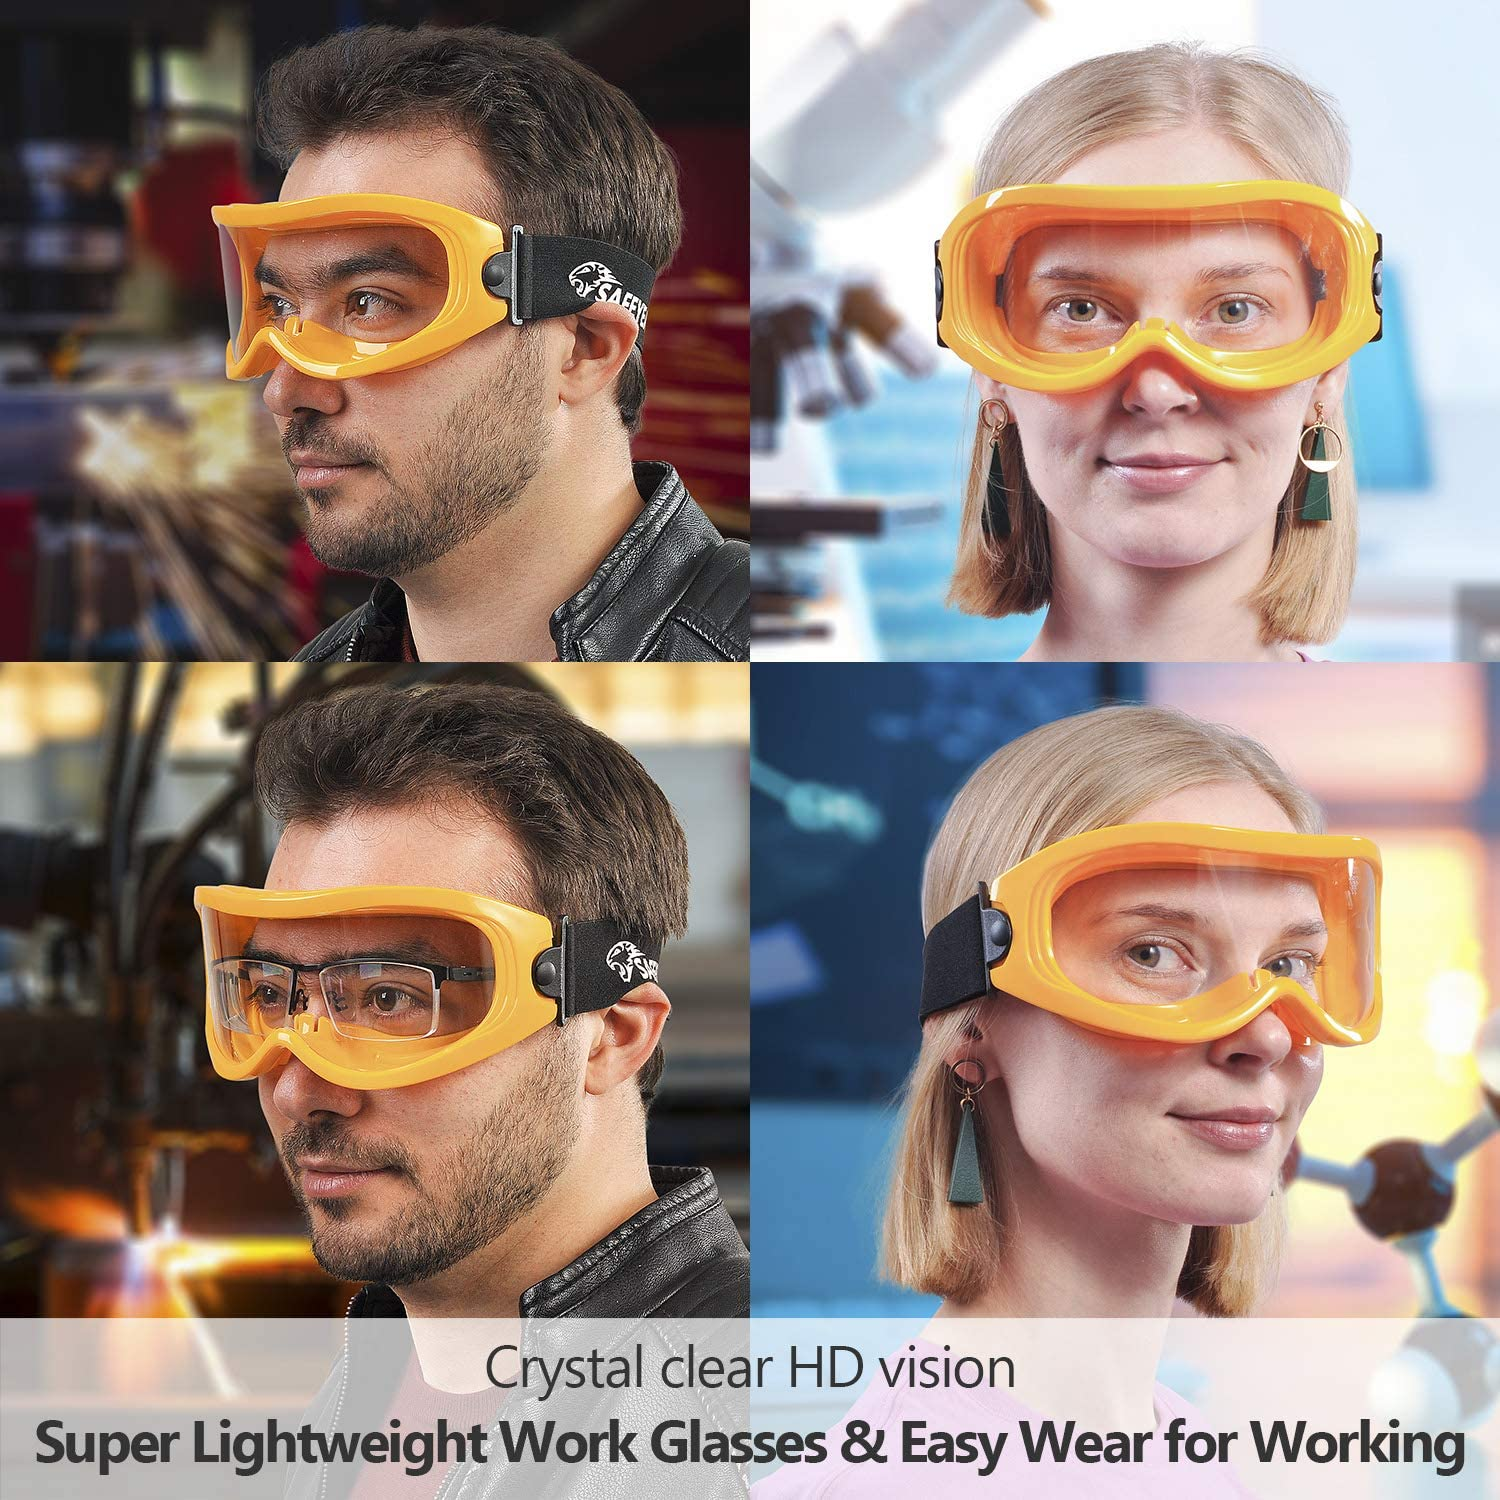 Safeyear Anti Fog Safety Goggles Eye Impacted Sealed Protective Work Goggles Over Spectacles for DIY Lab SG007 Scratch Resistant /& UV Protection Safety Glasses for Men Grinding Welding Cycling SG-007